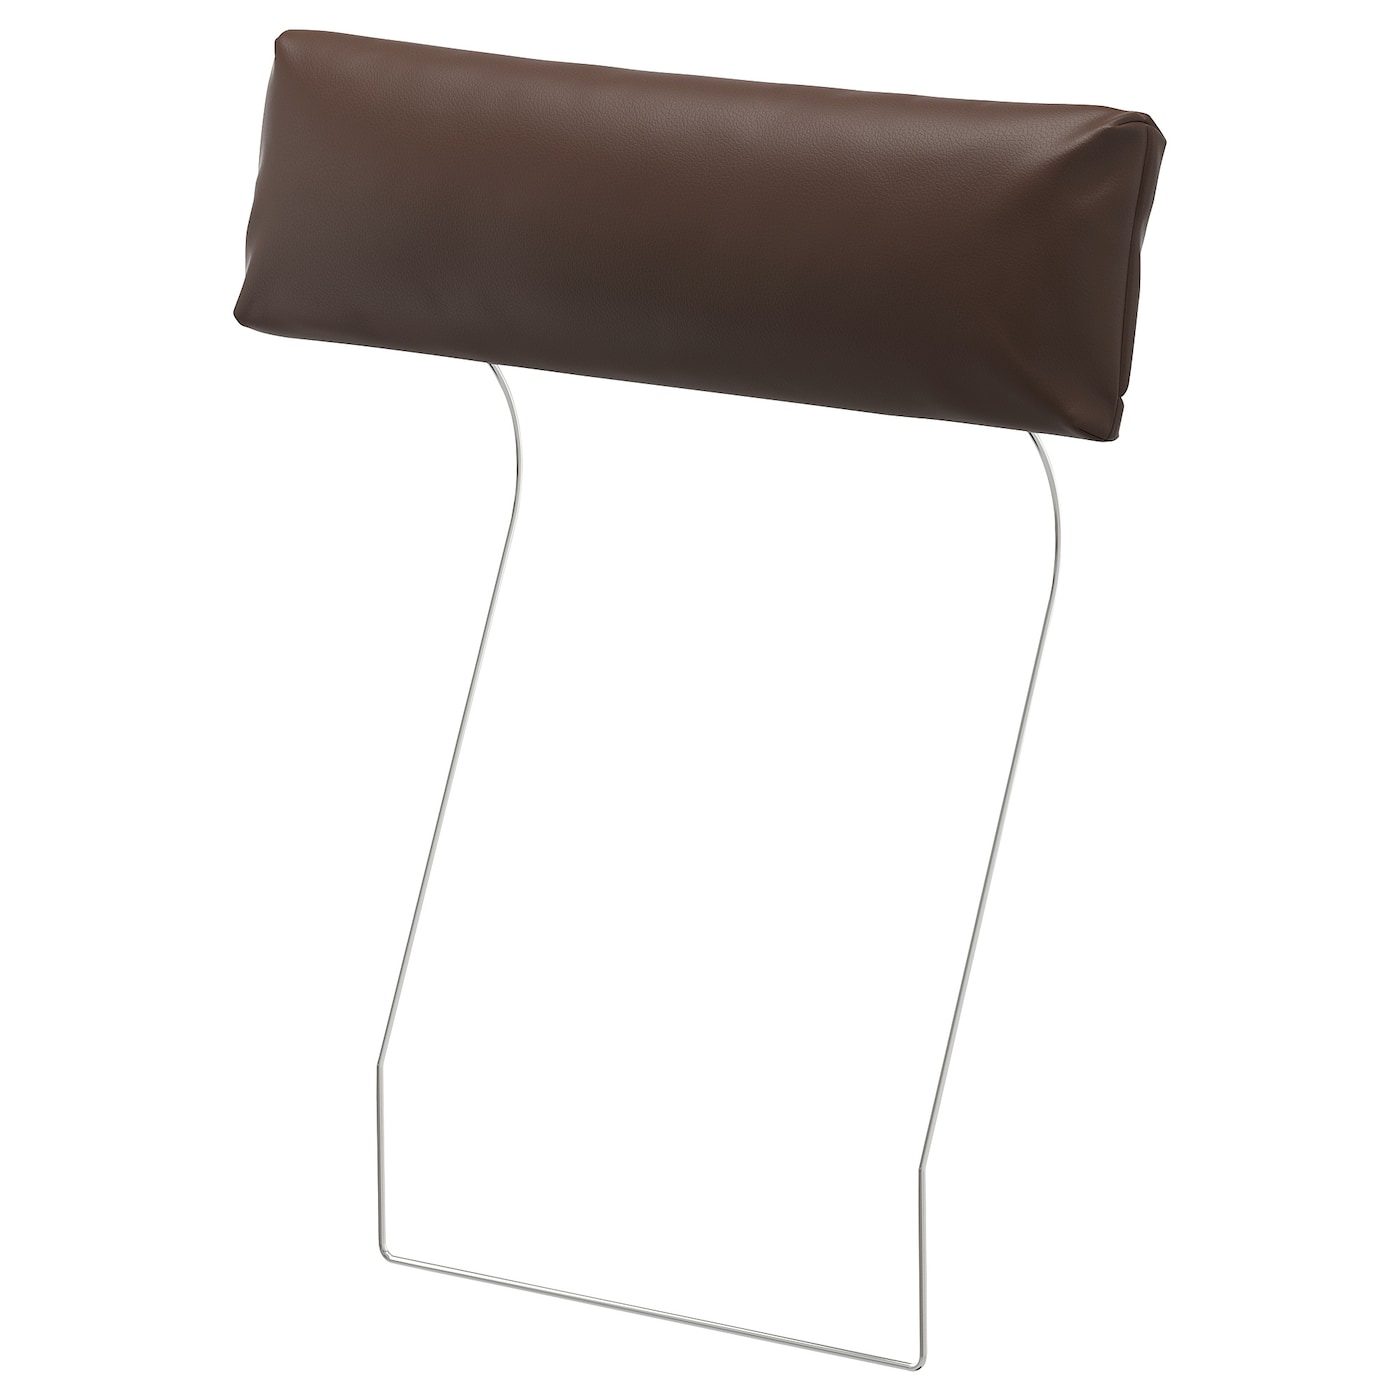 IKEA VIMLE headrest The cover is easy to keep clean as it can be wiped clean with a damp cloth.